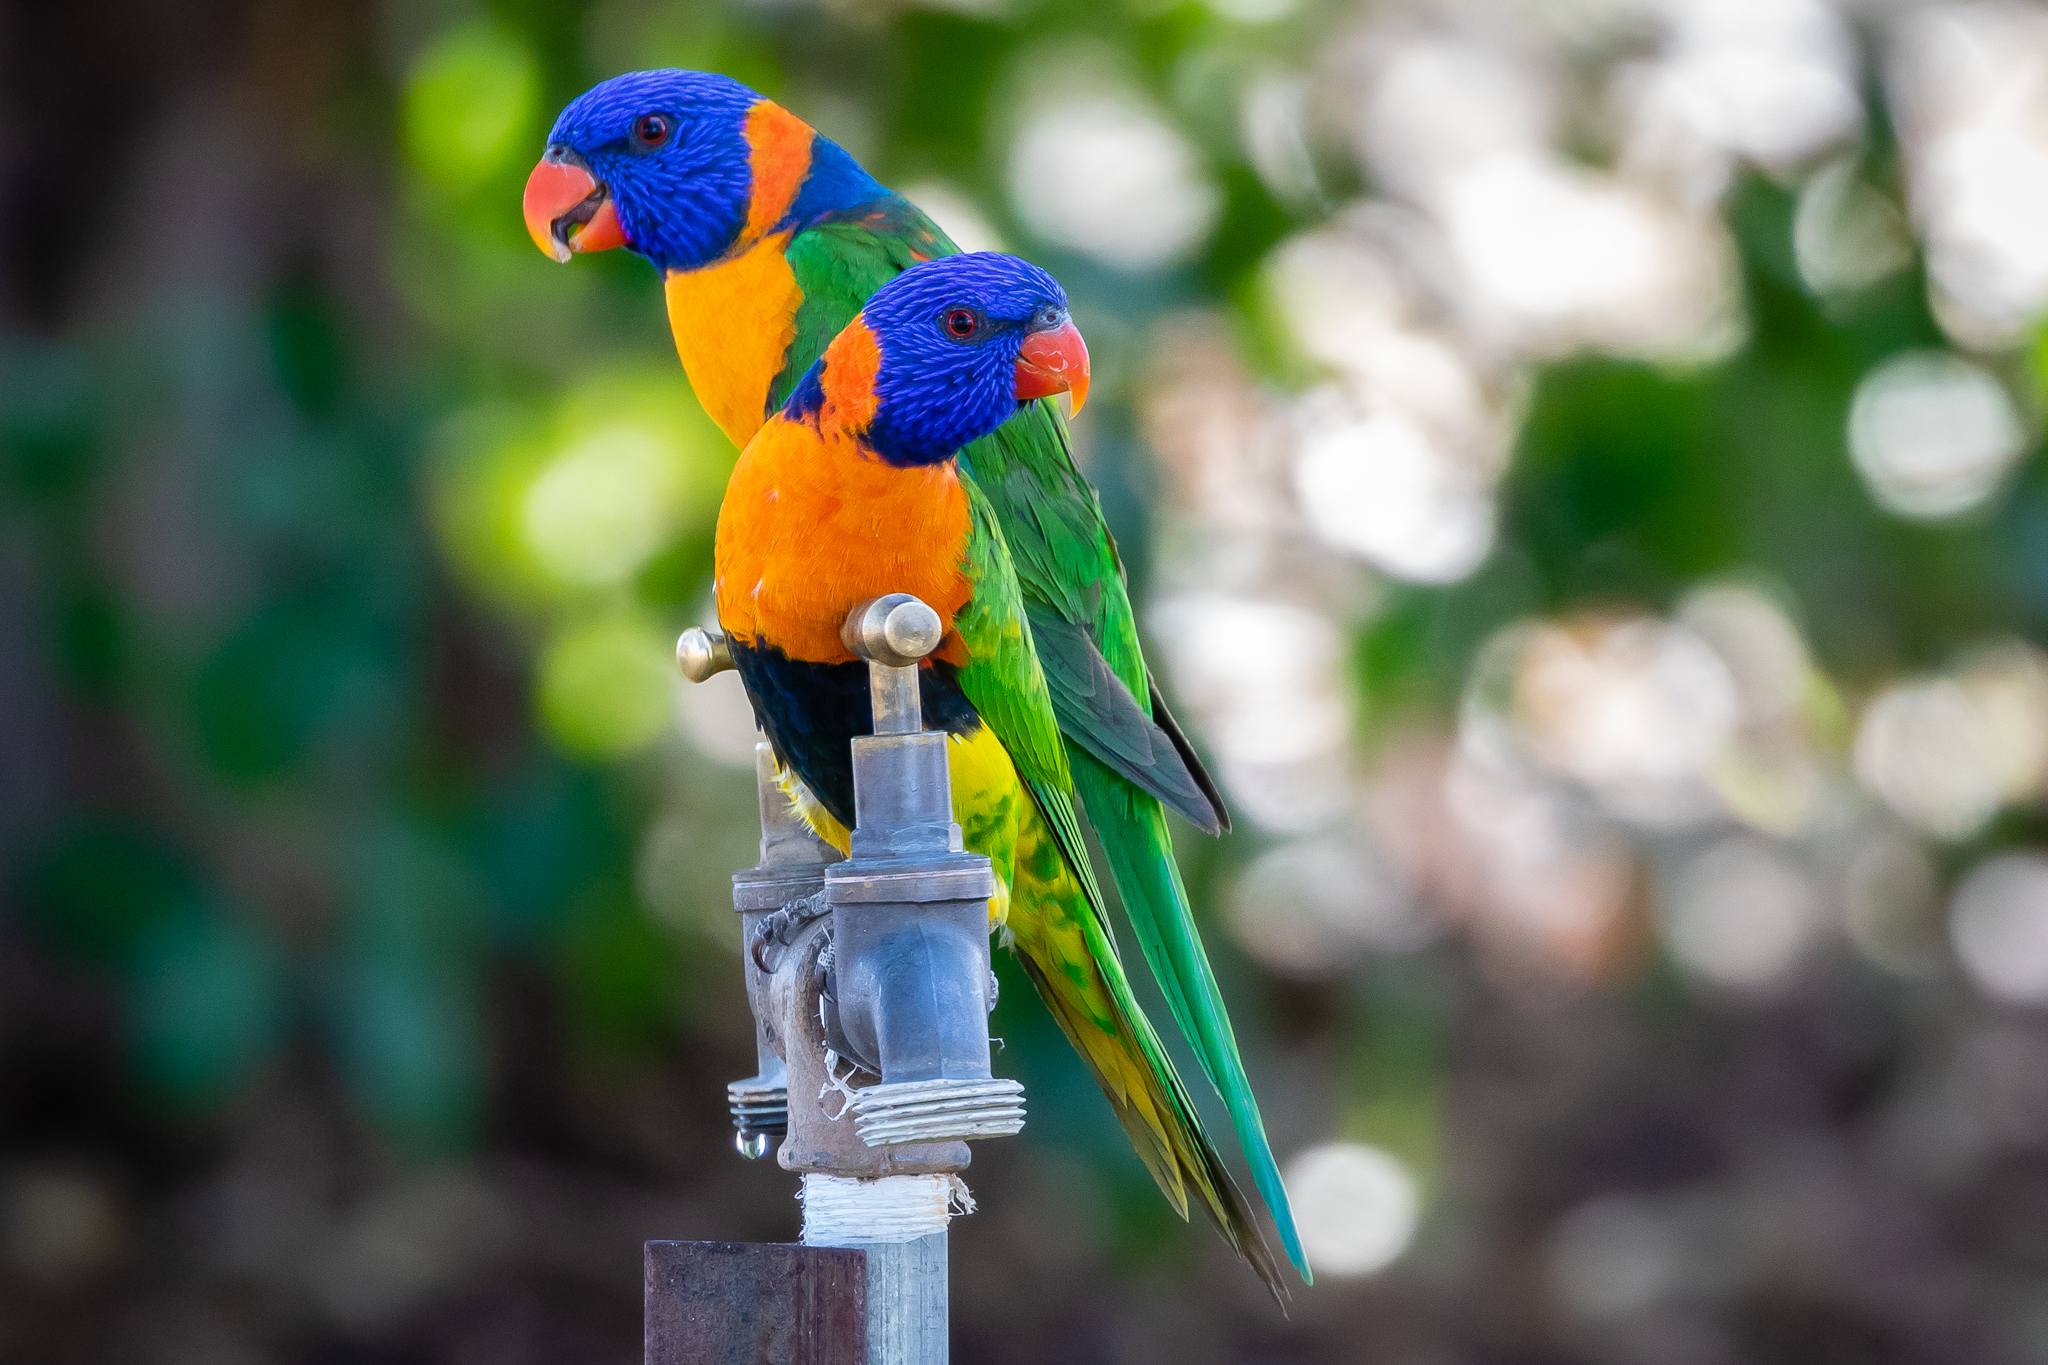 Lorikeets are true parrots. The Red-collared Lorikeet (31 cm) is only found in the Northern Territory and north of Western Australia. They feed on fruit, nectar, blossoms, seeds and berries.